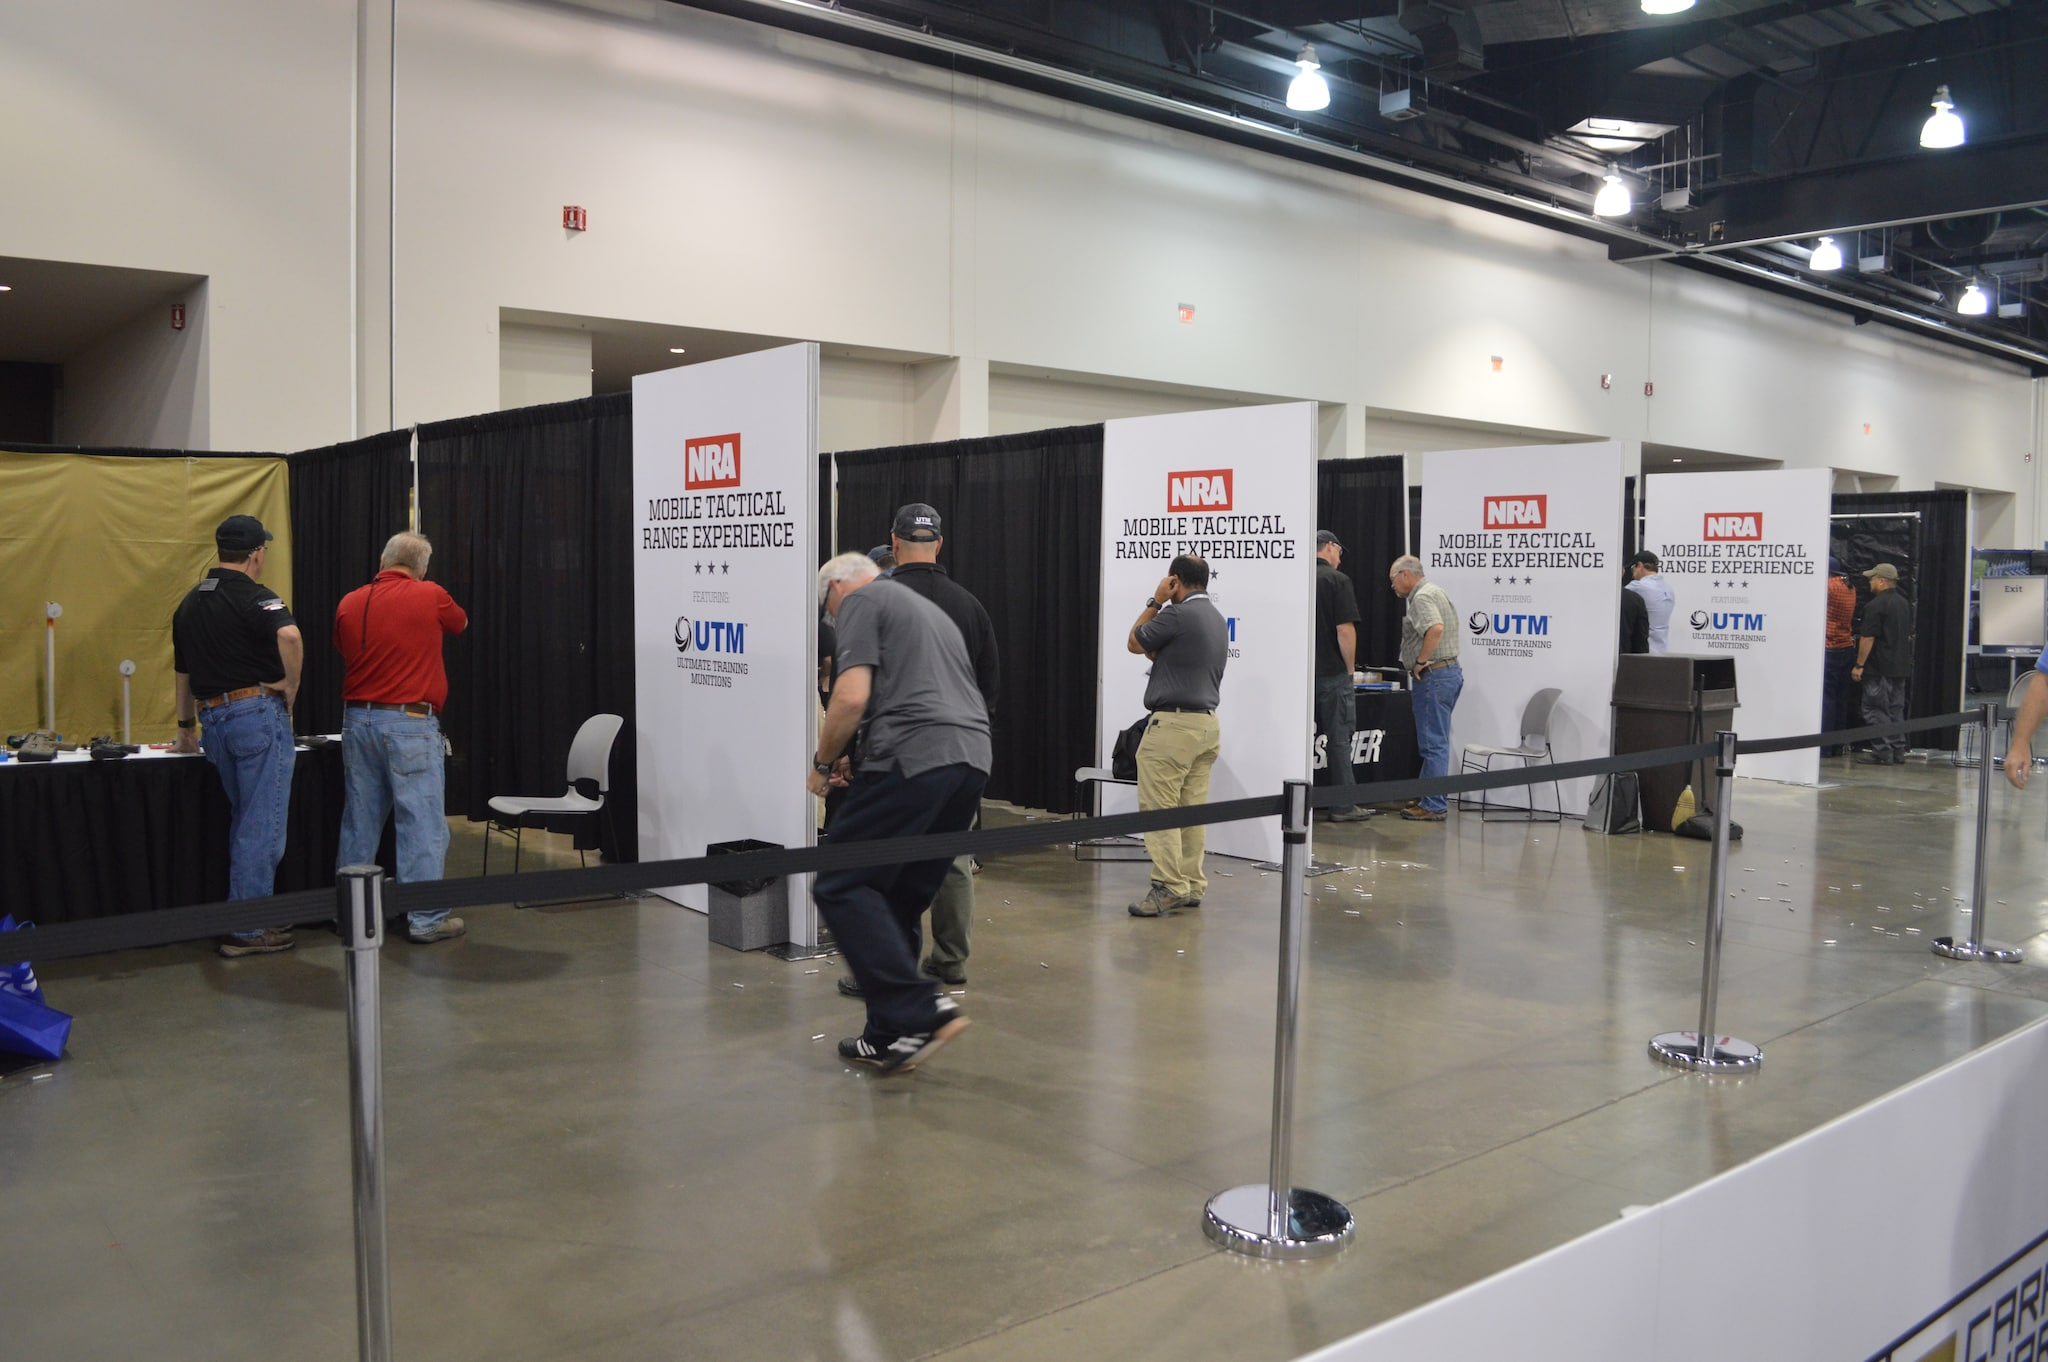 A long line of indoor range simulators was a popular spot during the Expo as attendees could test out some of the most popular guns on the show floor. (Photo: Kristin Alberts/Guns.com)